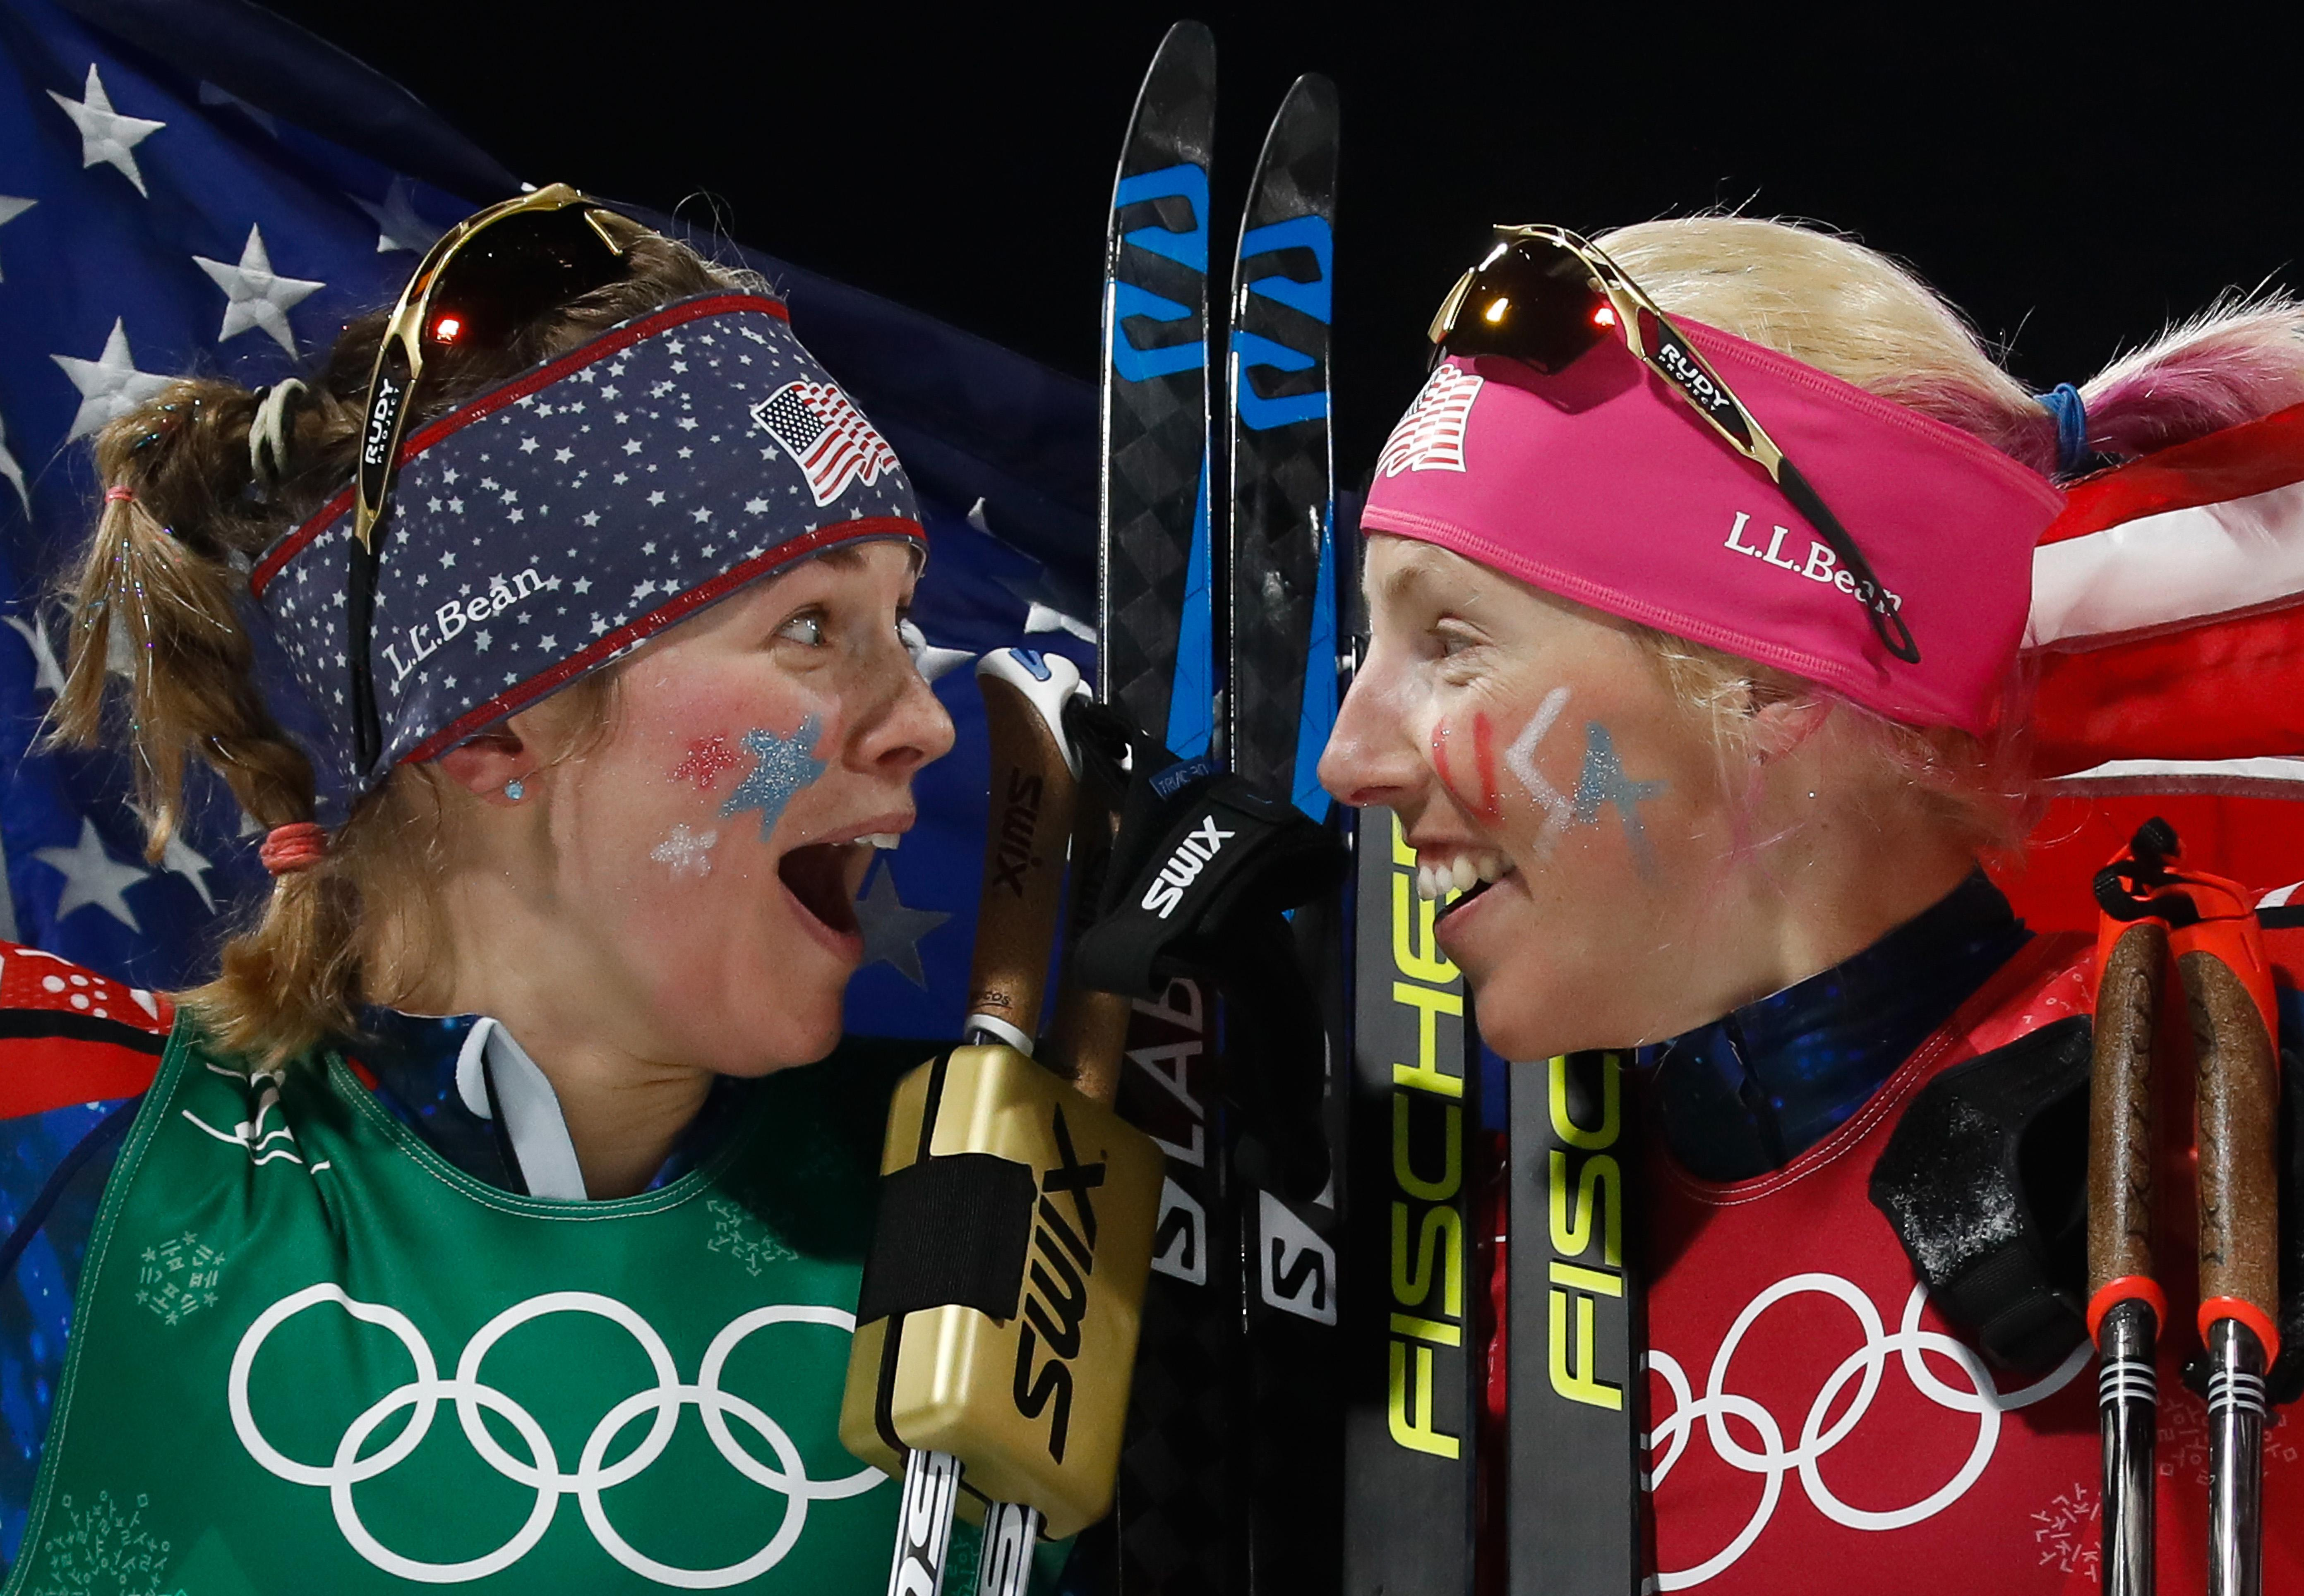 TOPSHOT - USA's Jessica Diggins (L) and USA's Kikkan Randall celebrate winning gold in the women's cross country team sprint free final at the Alpensia cross country ski centre during the Pyeongchang 2018 Winter Olympic Games on February 21, 2018 in Pyeongchang.  / AFP PHOTO / Odd ANDERSEN        (Photo credit should read ODD ANDERSEN/AFP/Getty Images)